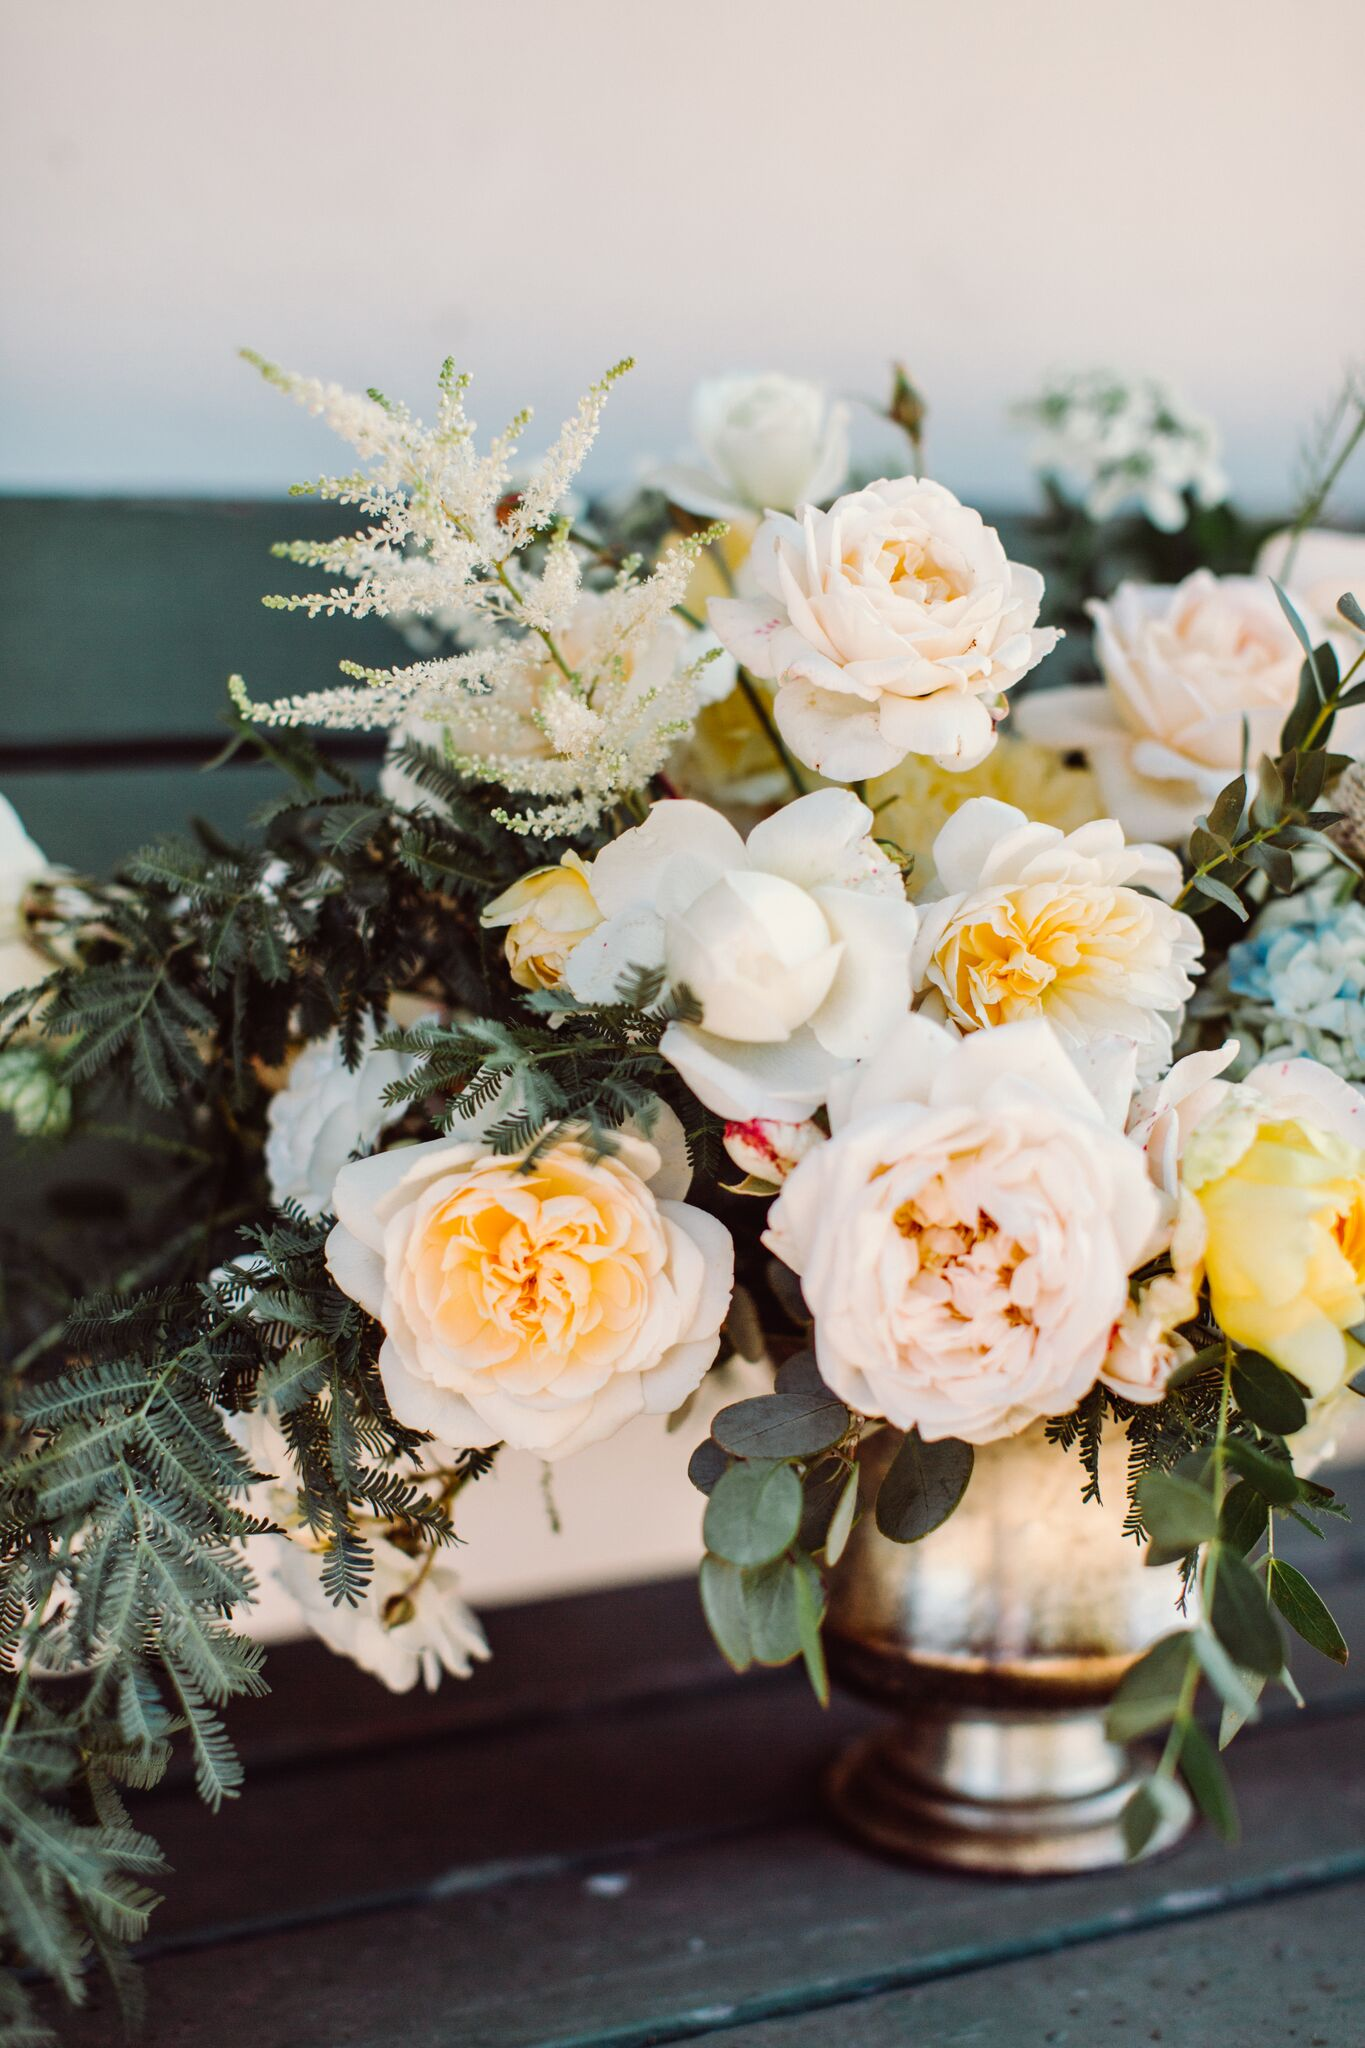 image by Jona Christina  florals by Open Road Florals